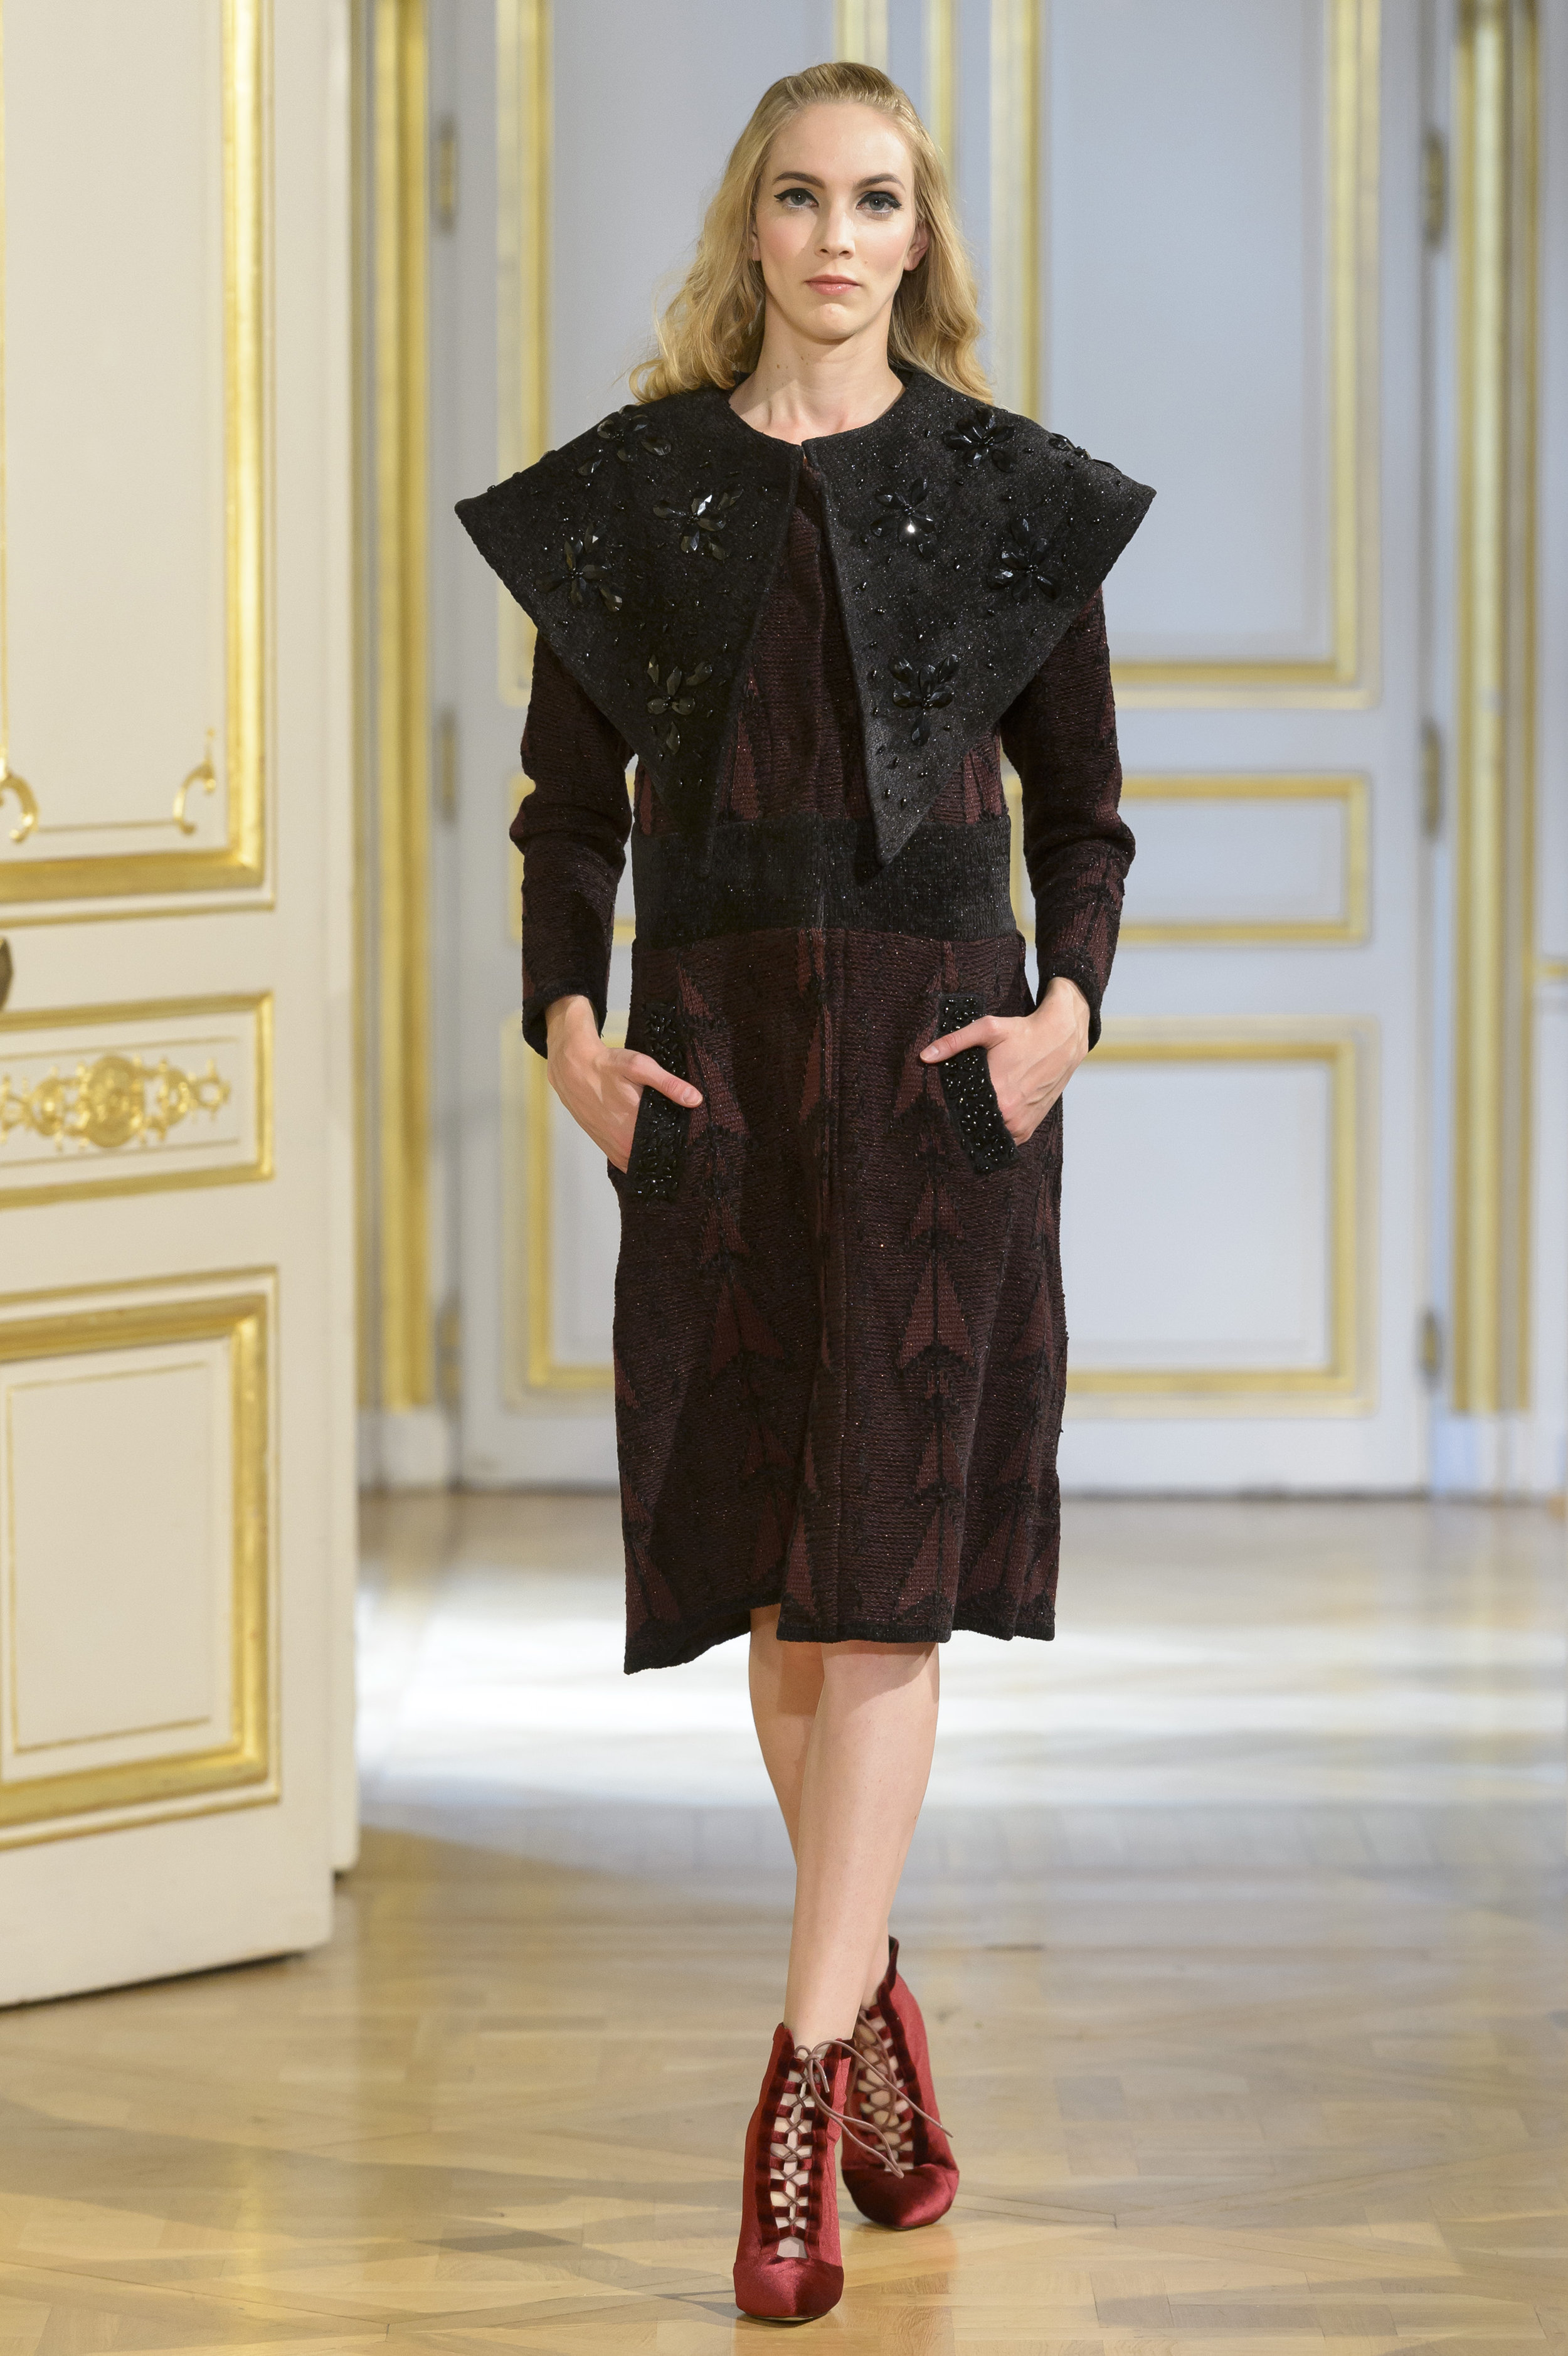 MARIA ARISTIDOU photos defile : fashion show %22Serendipity%22 couture collection automne hiver : fall winter 2018 2019 PFW - © Imaxtree 8.jpg